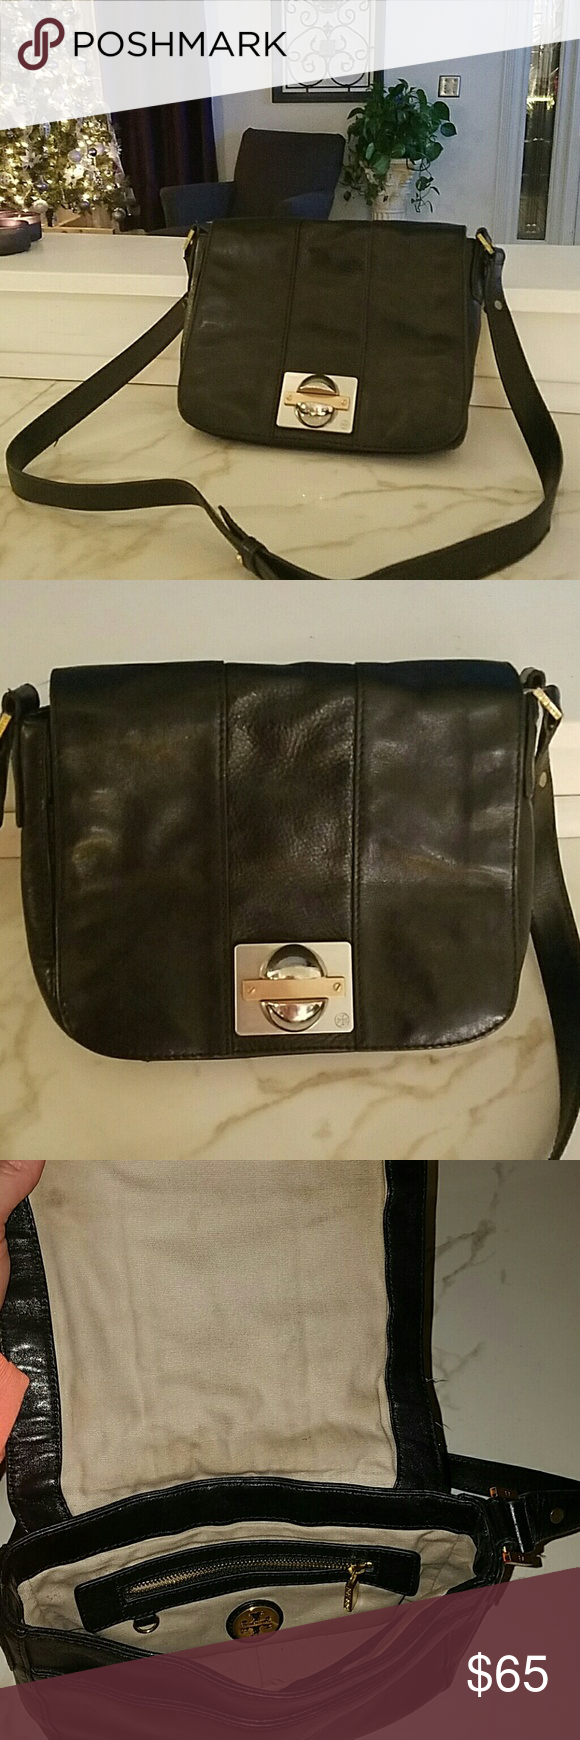 Tory burch bag Tory Burch bag. Good condition. About 9 inches across and 7 inches tall. Inside could use a cleaning but the bag is in good shape. Tory Burch Bags